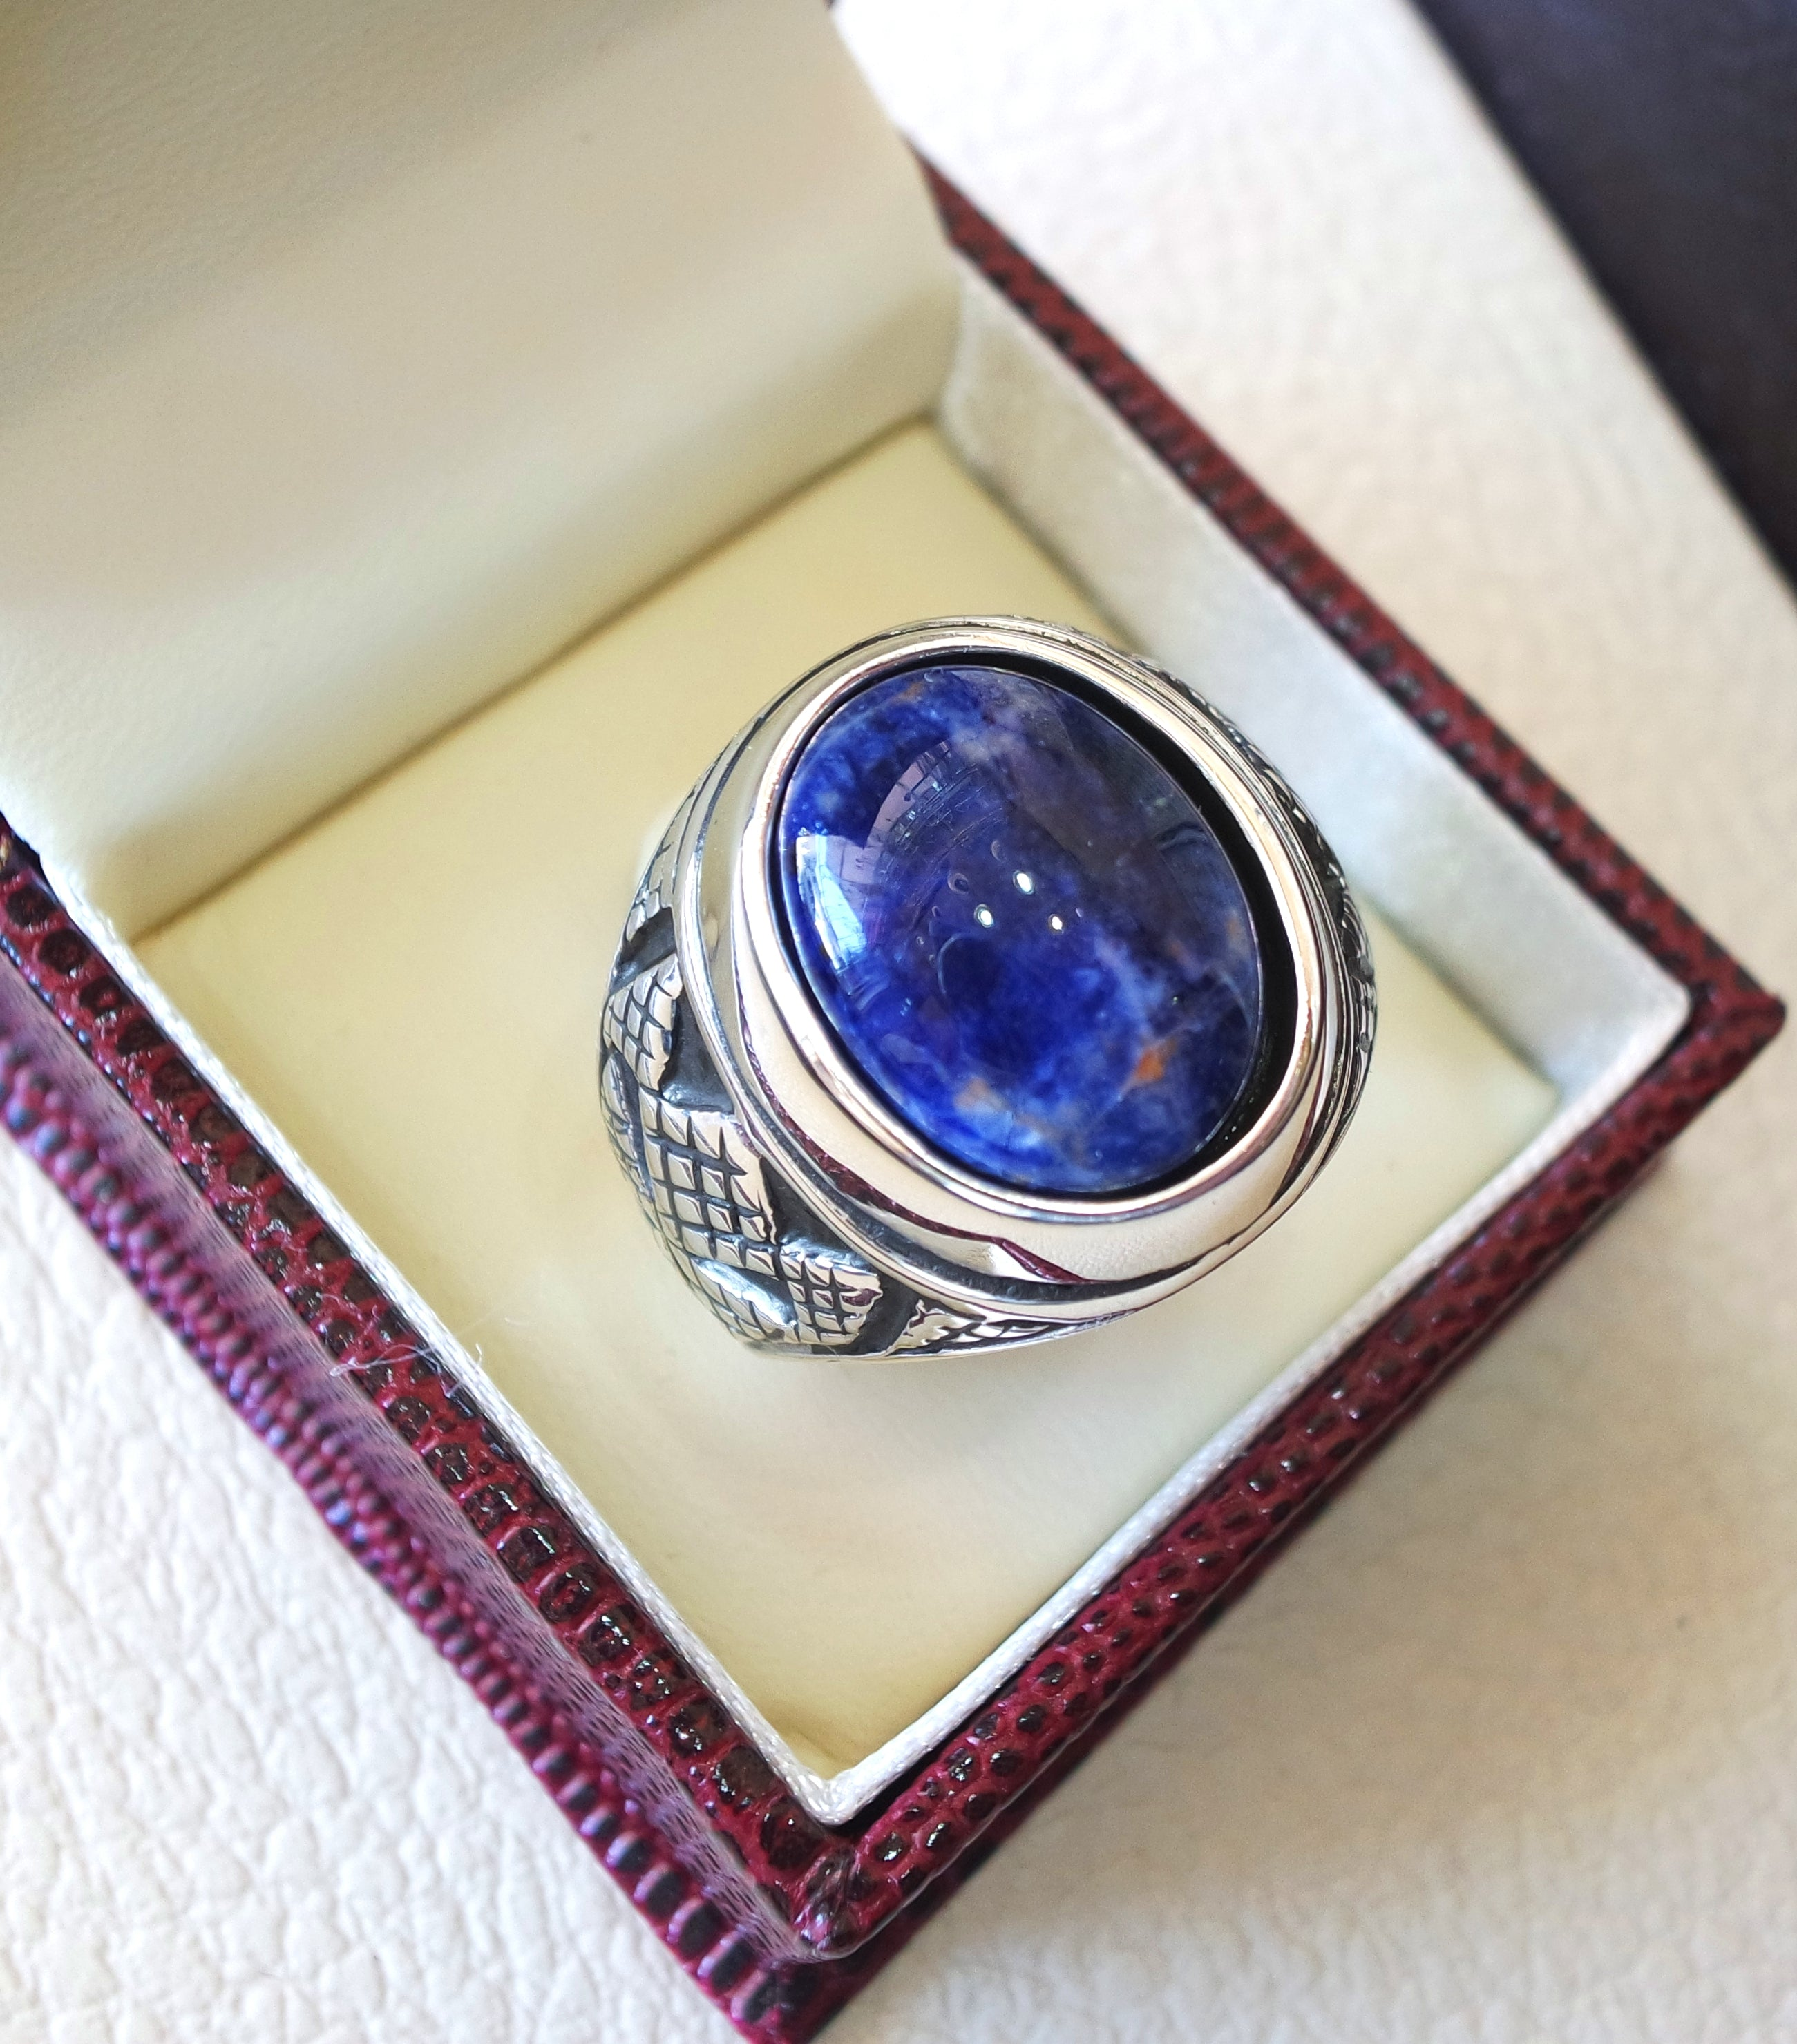 emily jessie original jewelry products royal image gemstone store blue ring stone thai thumbnail online